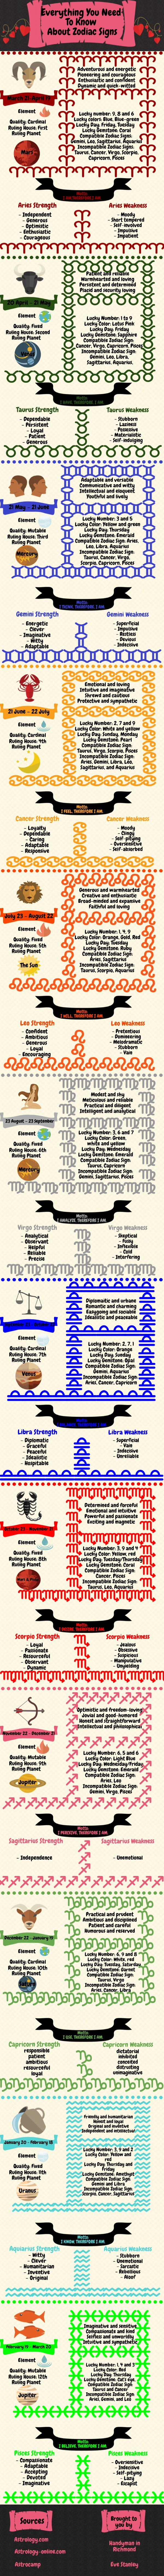 everyting-you-need-to-know-about-zodiac-signs-thumbnail_53975b7651b0b_w1500